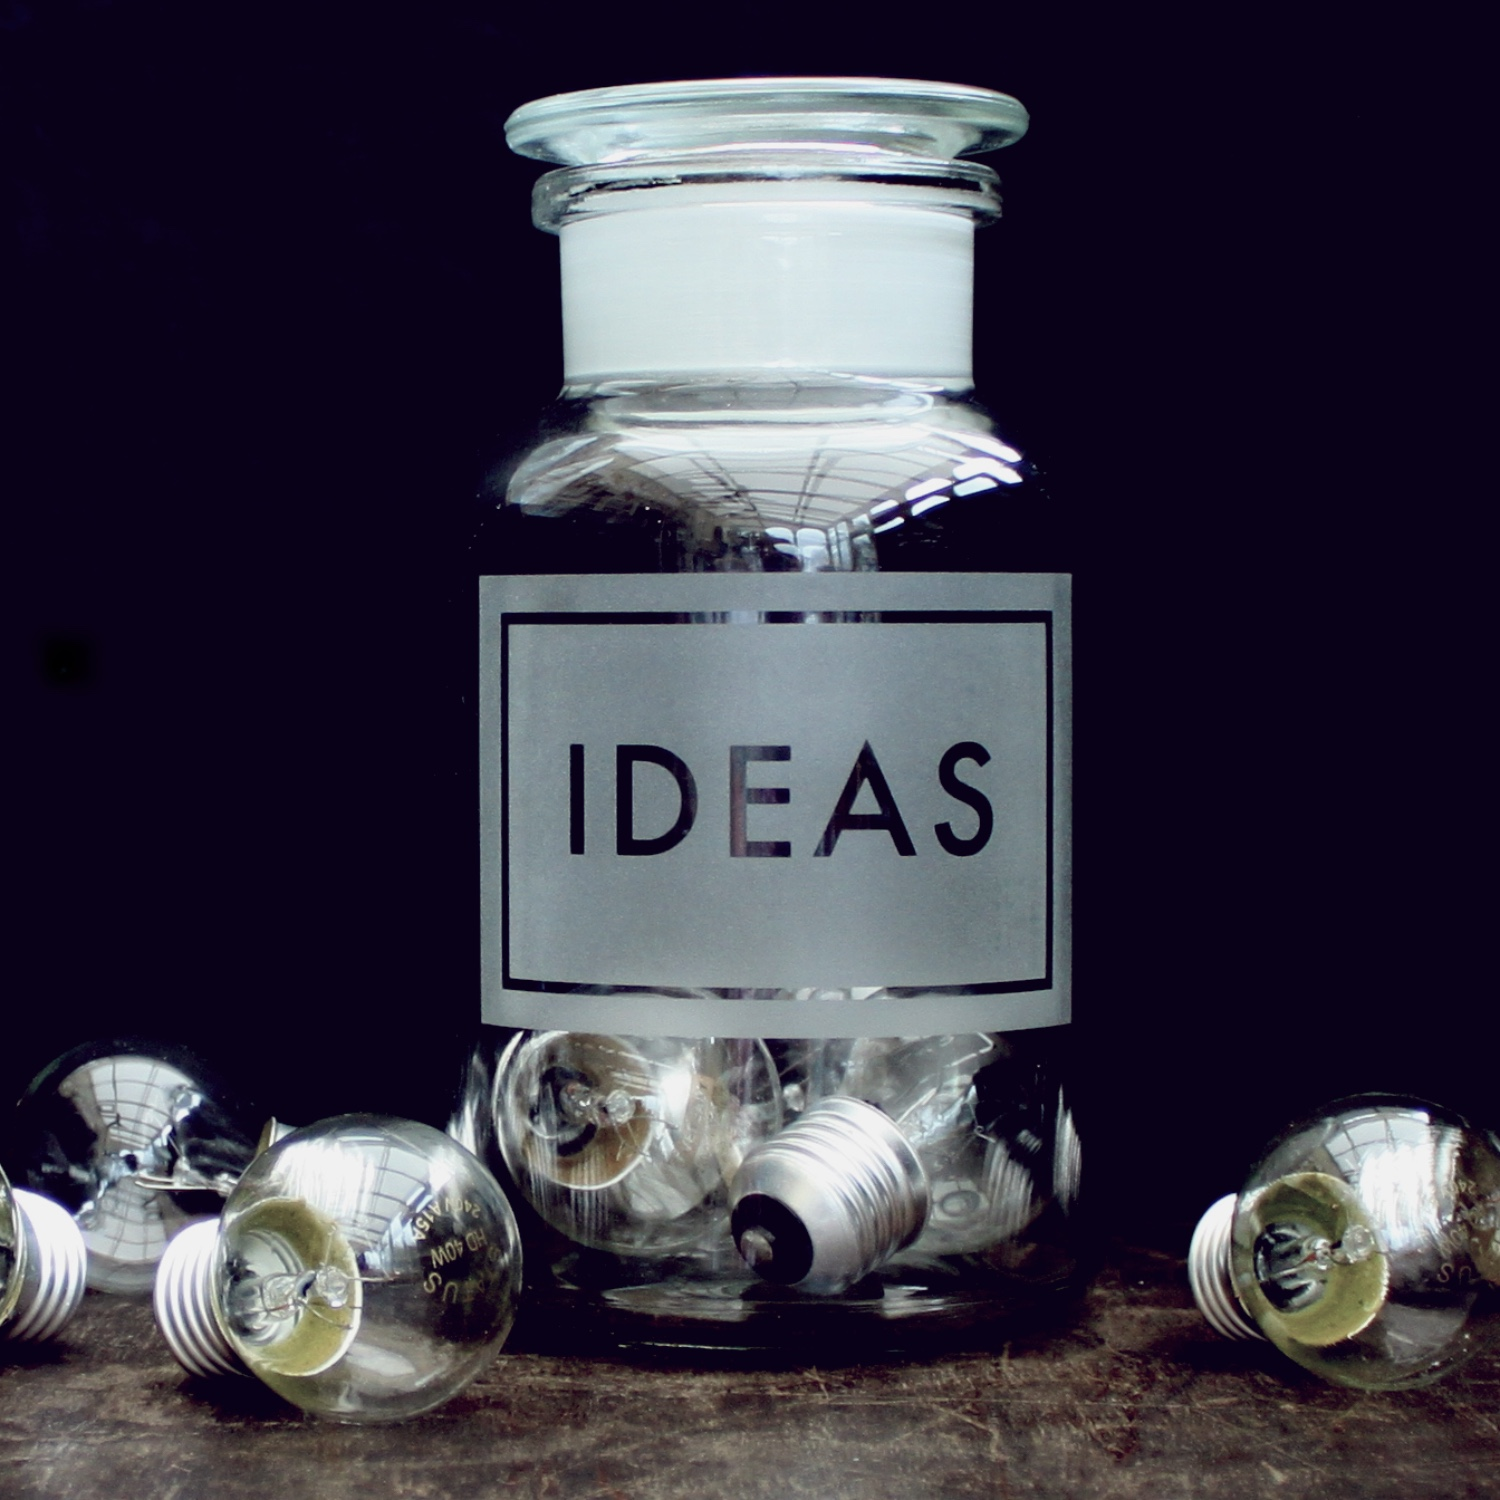 ideas-etched-apothecary-jar-vinegar-and-brown-paper.jpg